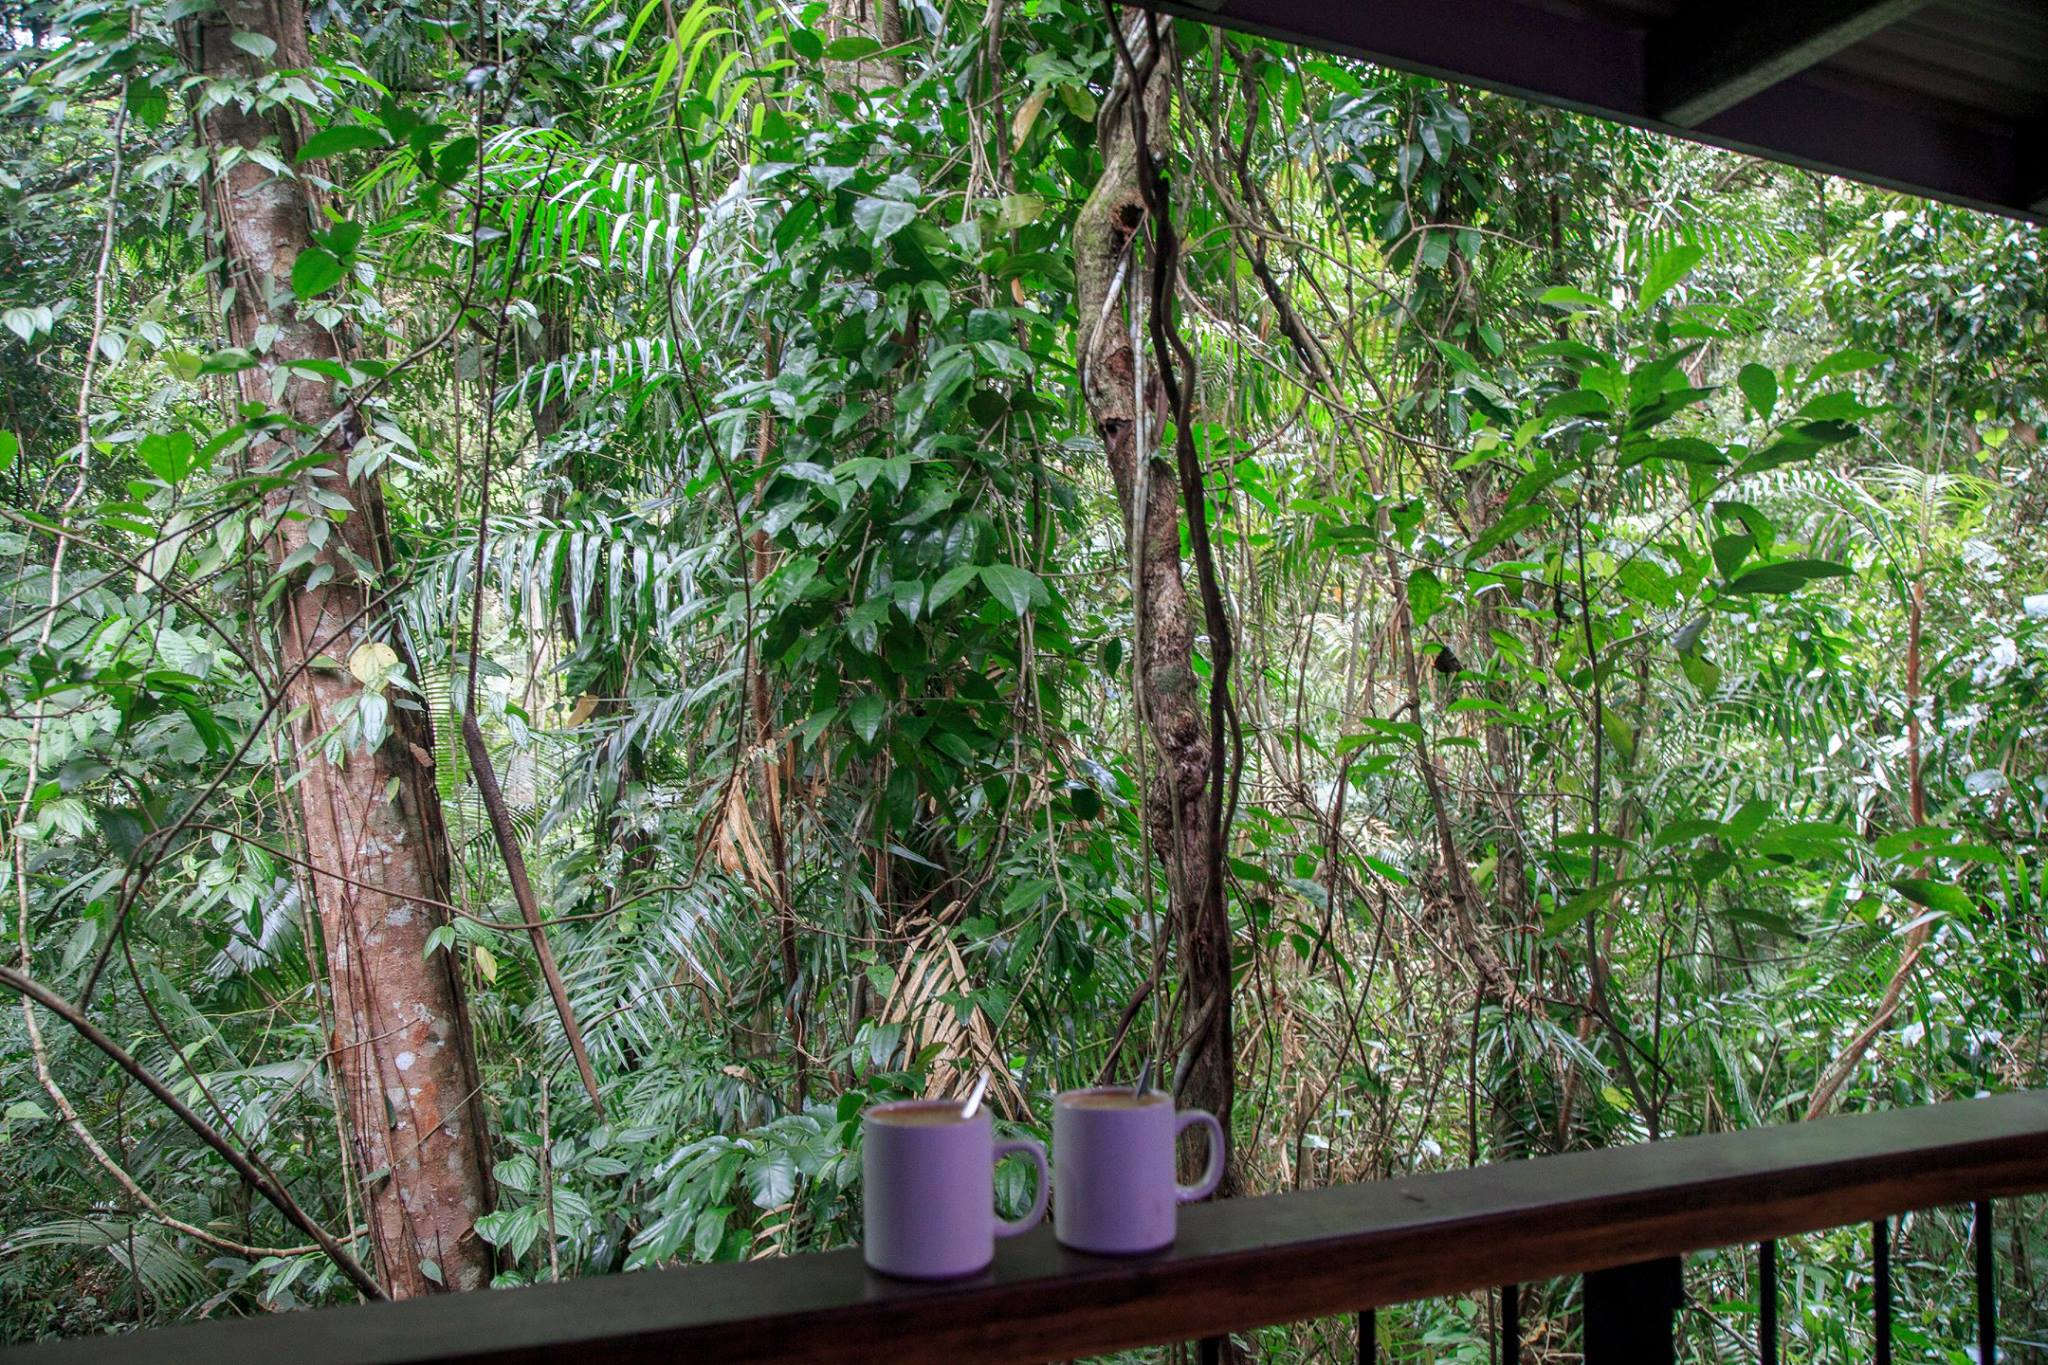 Coffee with a view at the Daintree Discovery Centre, Queensland